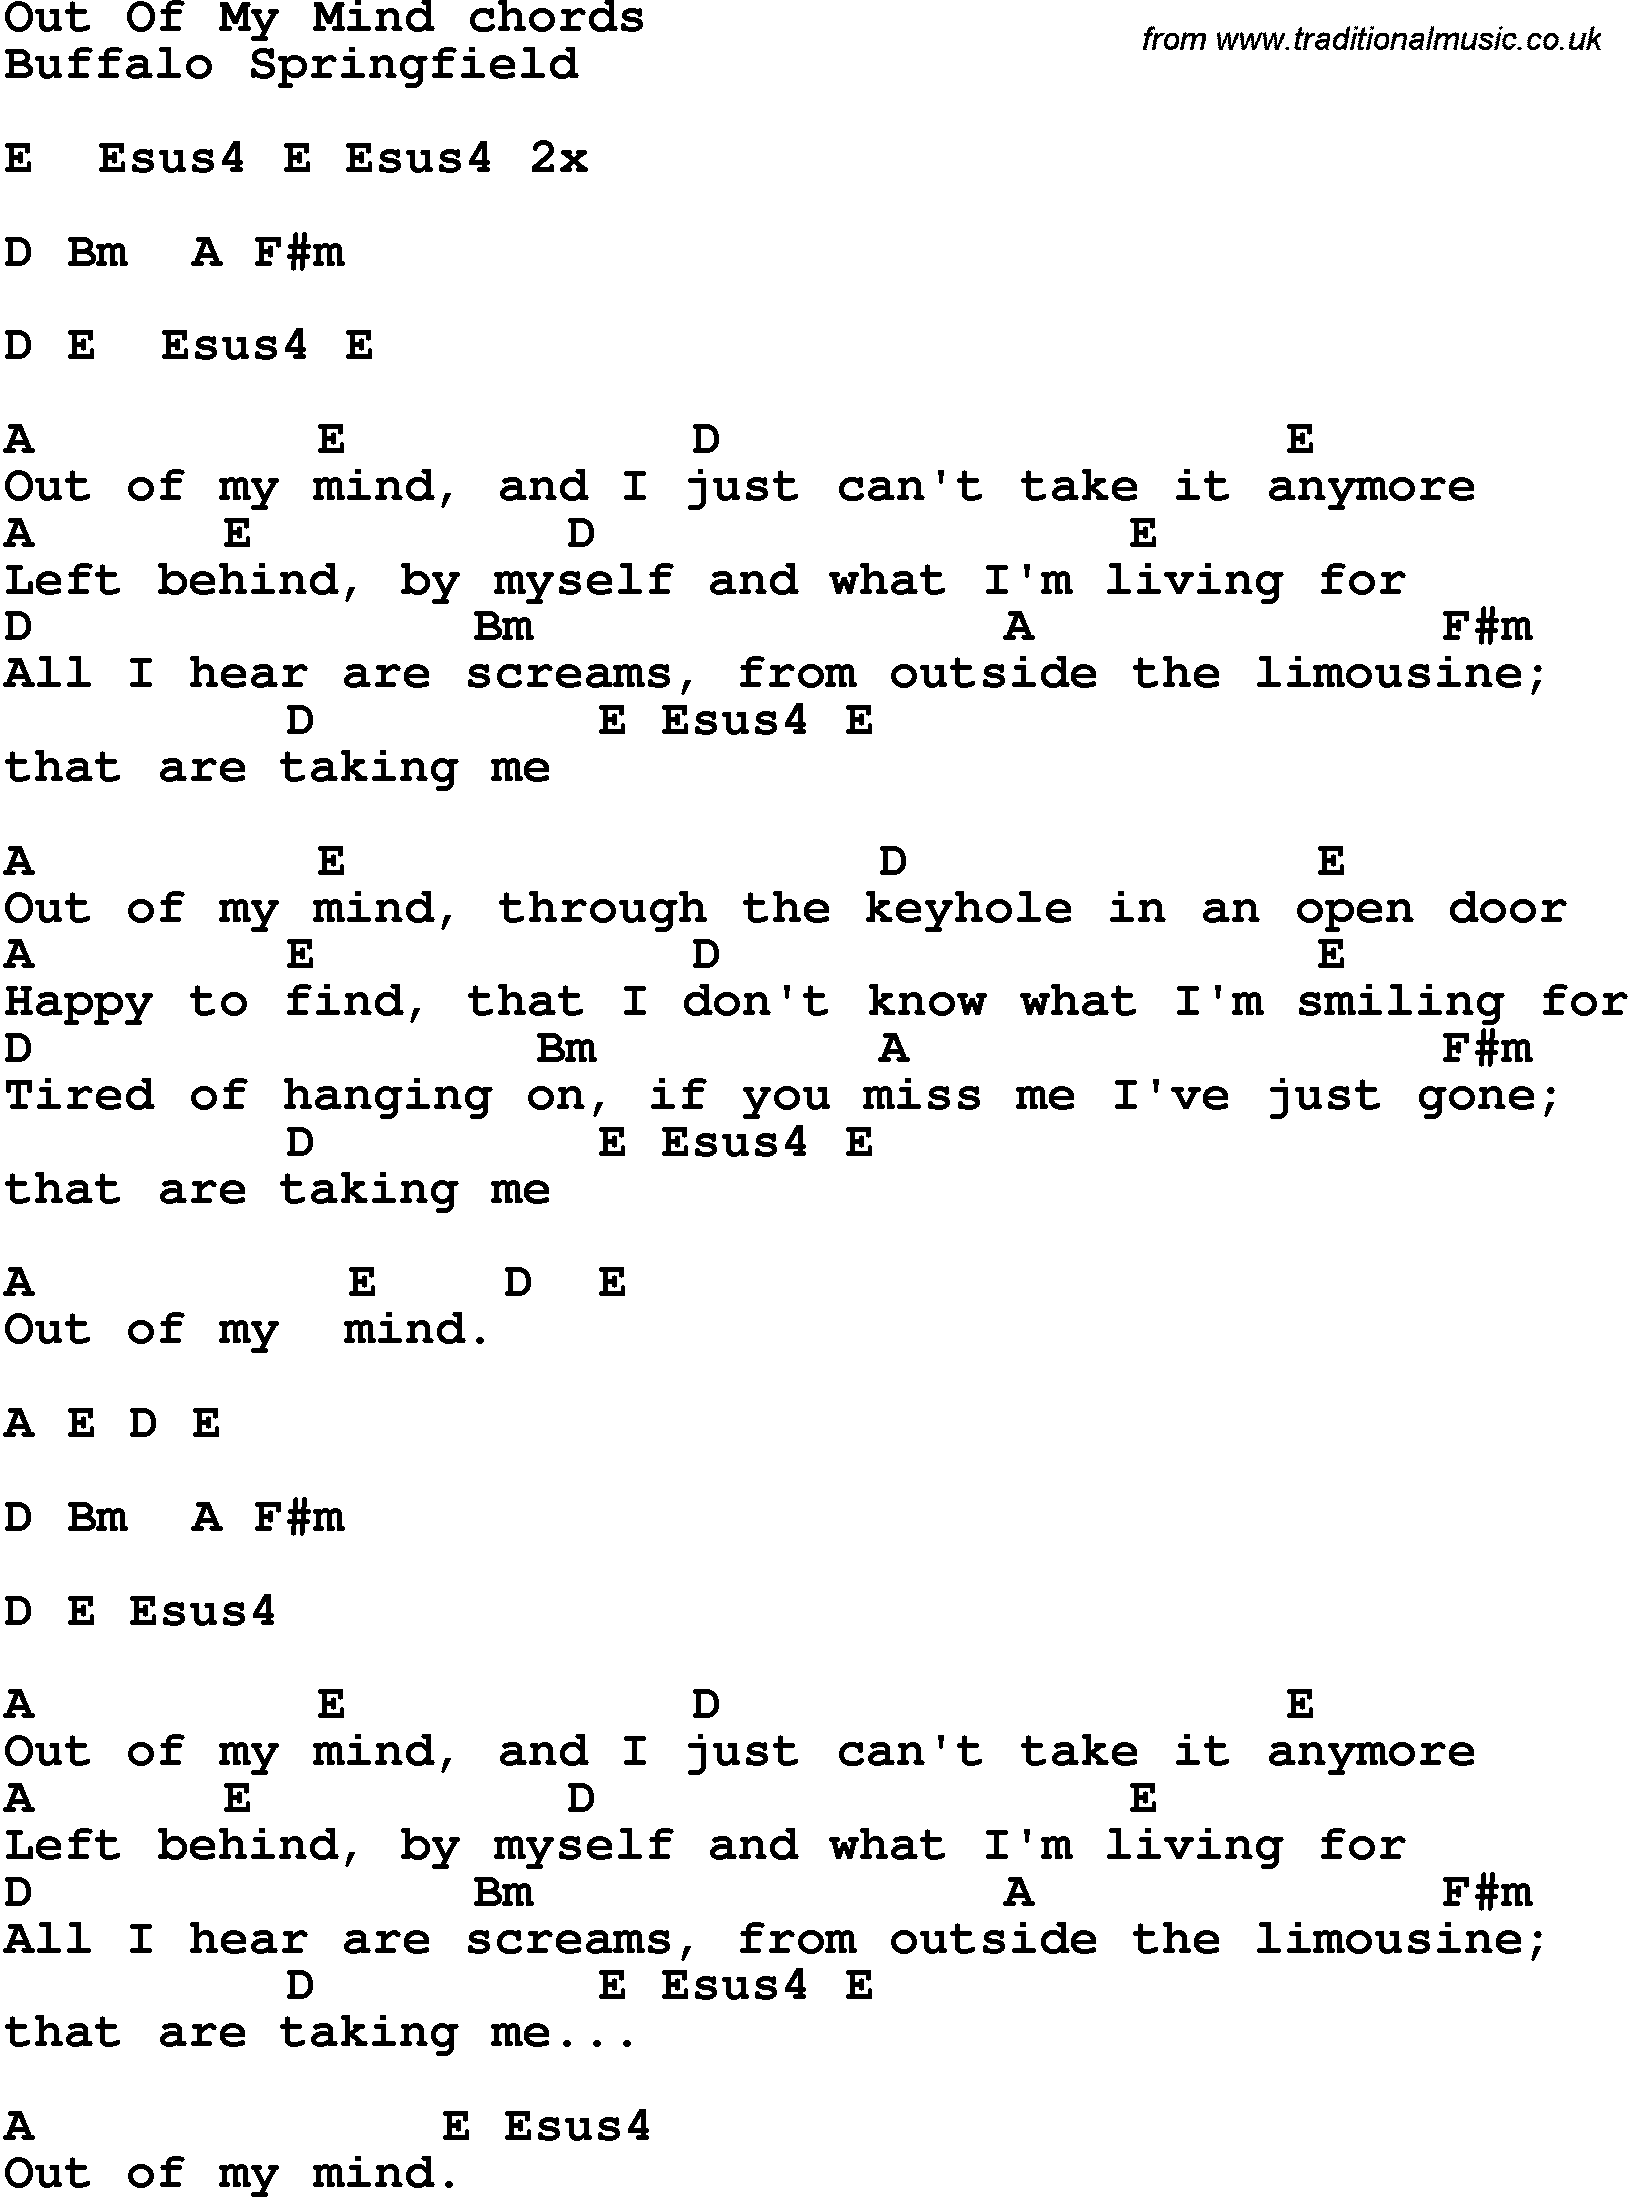 Song Lyrics With Guitar Chords For Out Of My Mind